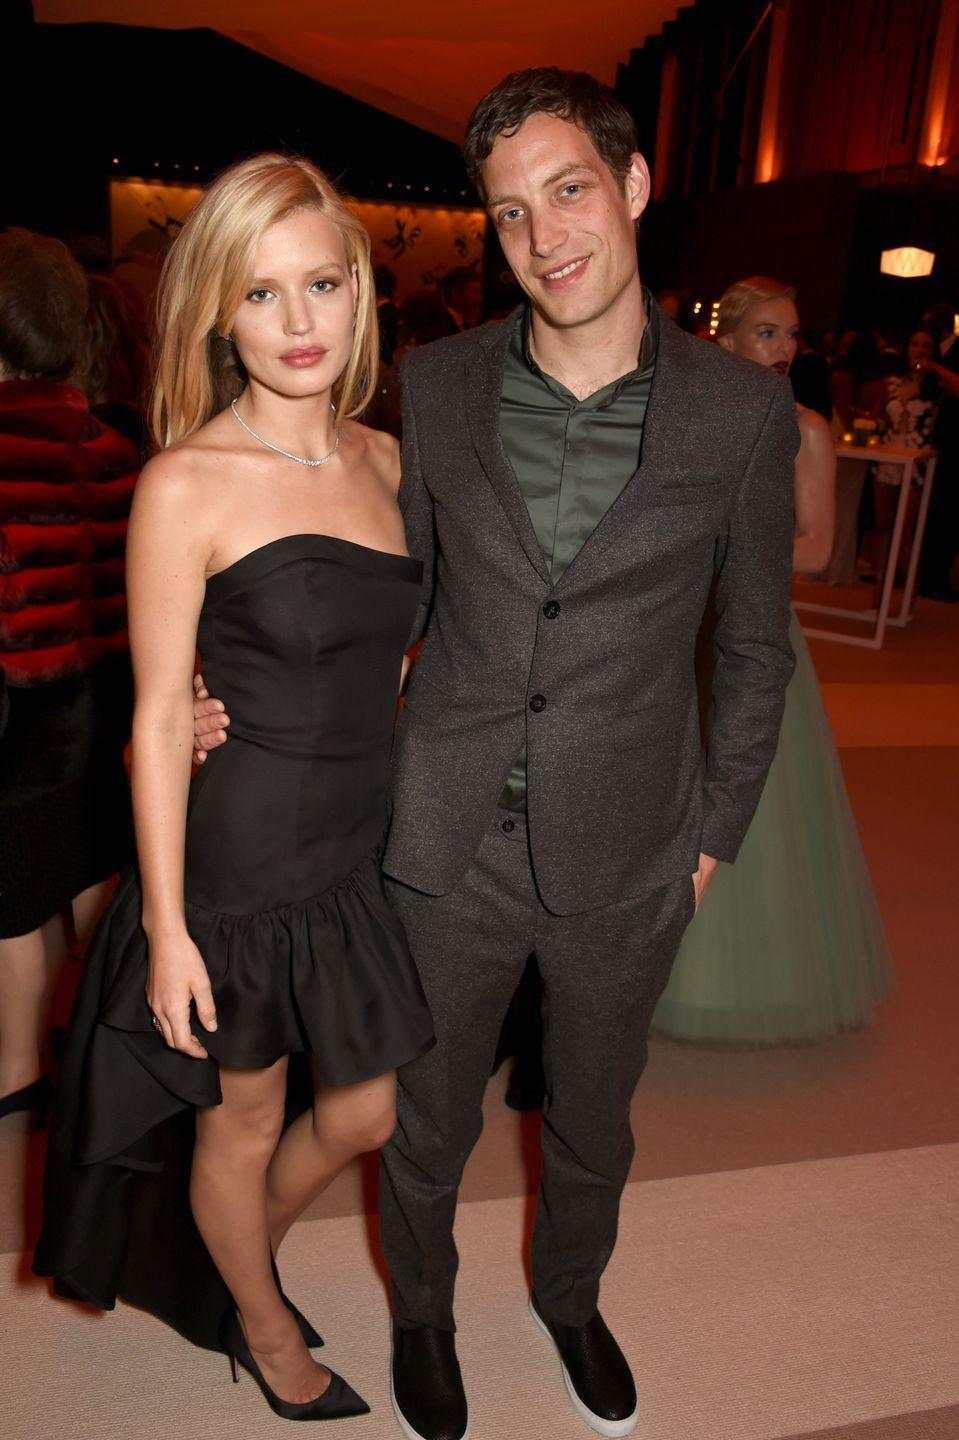 <p>James and Georgia May Jagger share a famous rockstar father—and it shows. The famous siblings were lucky enough to both get Mick Jagger's famous lips. </p>